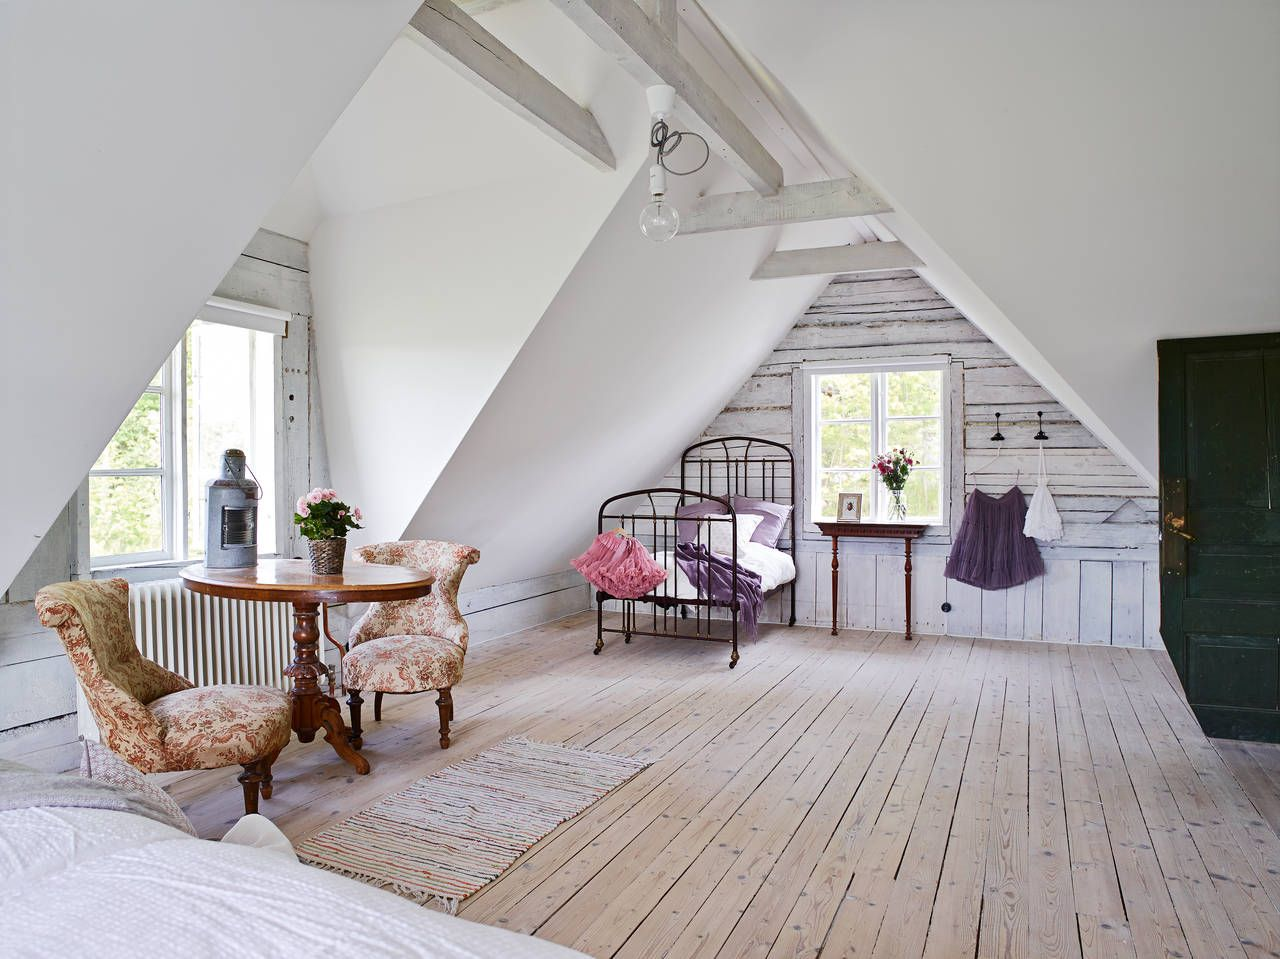 I would love an attic like this. Just perfect with the white wash on the timber wall. Tingberg Gossagården 103 | Stadshem